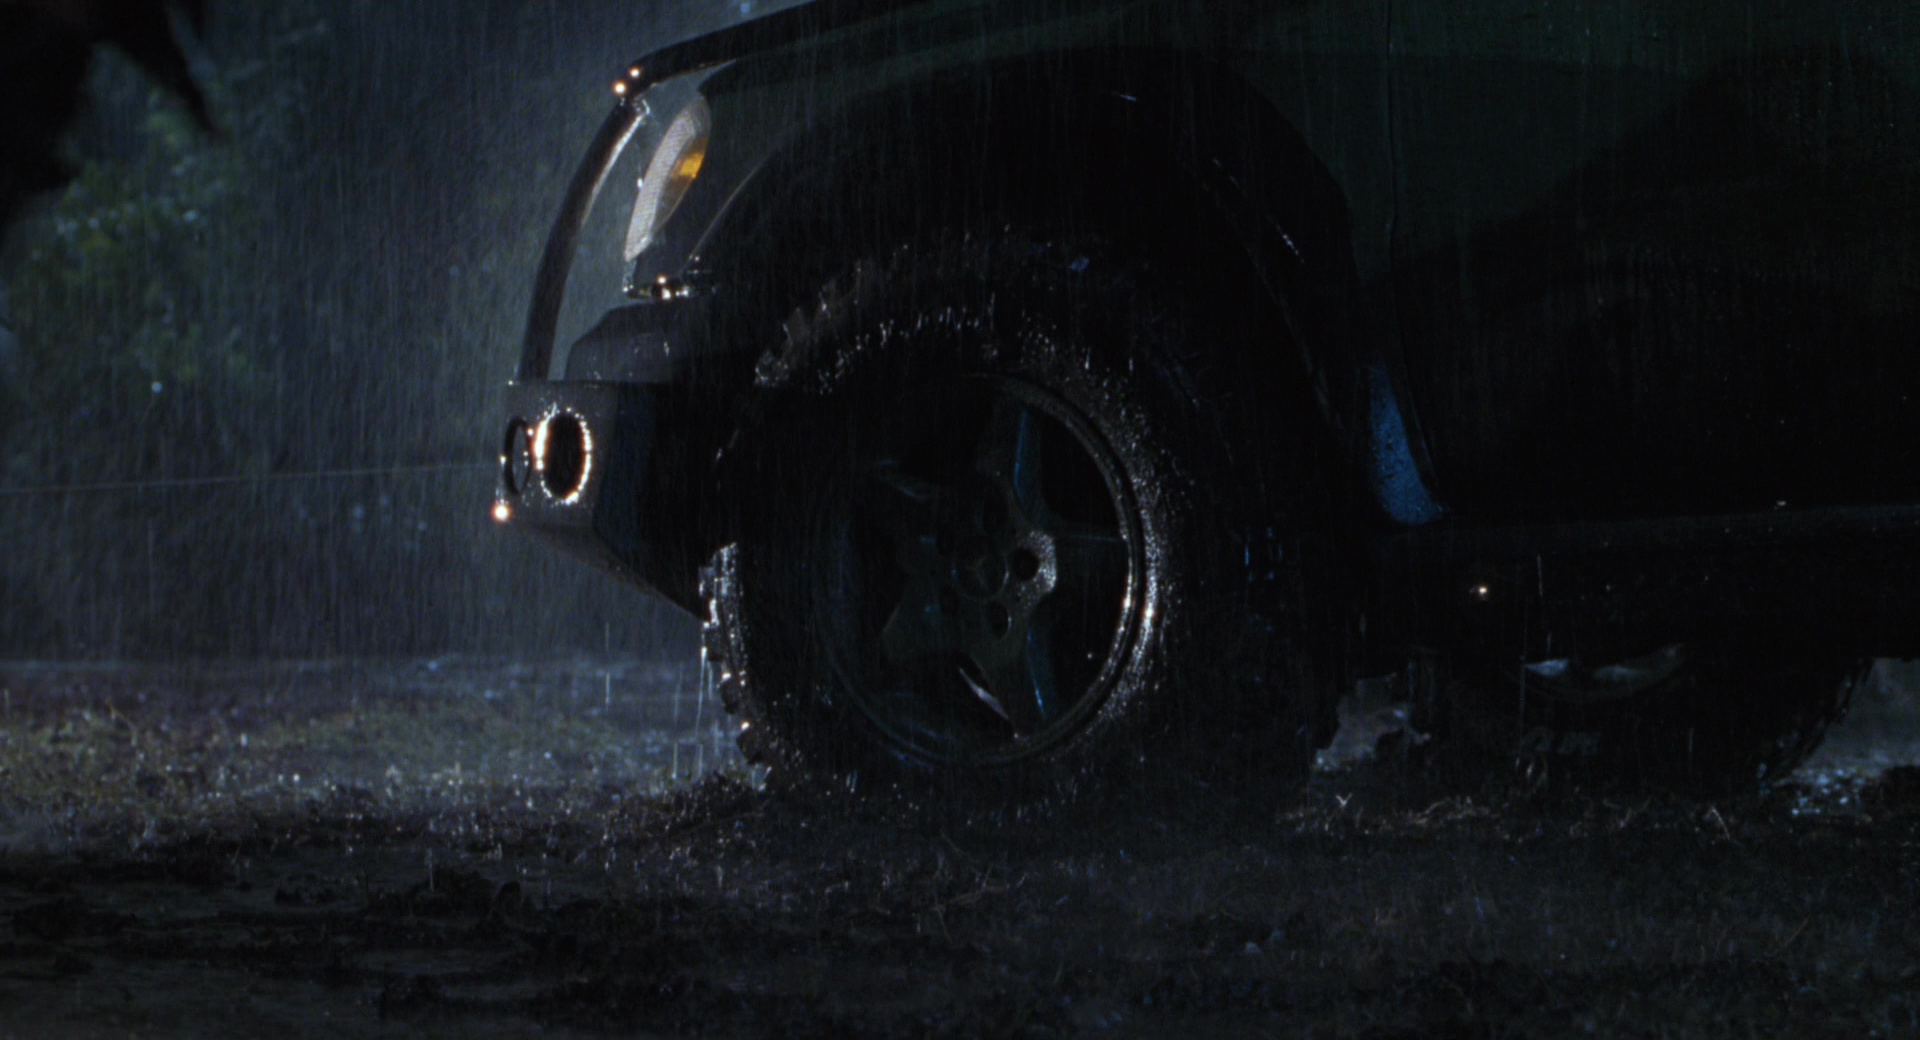 Mercedes Benz Ml Class Cars In The Lost World Jurassic Park on 1997 Dodge Truck